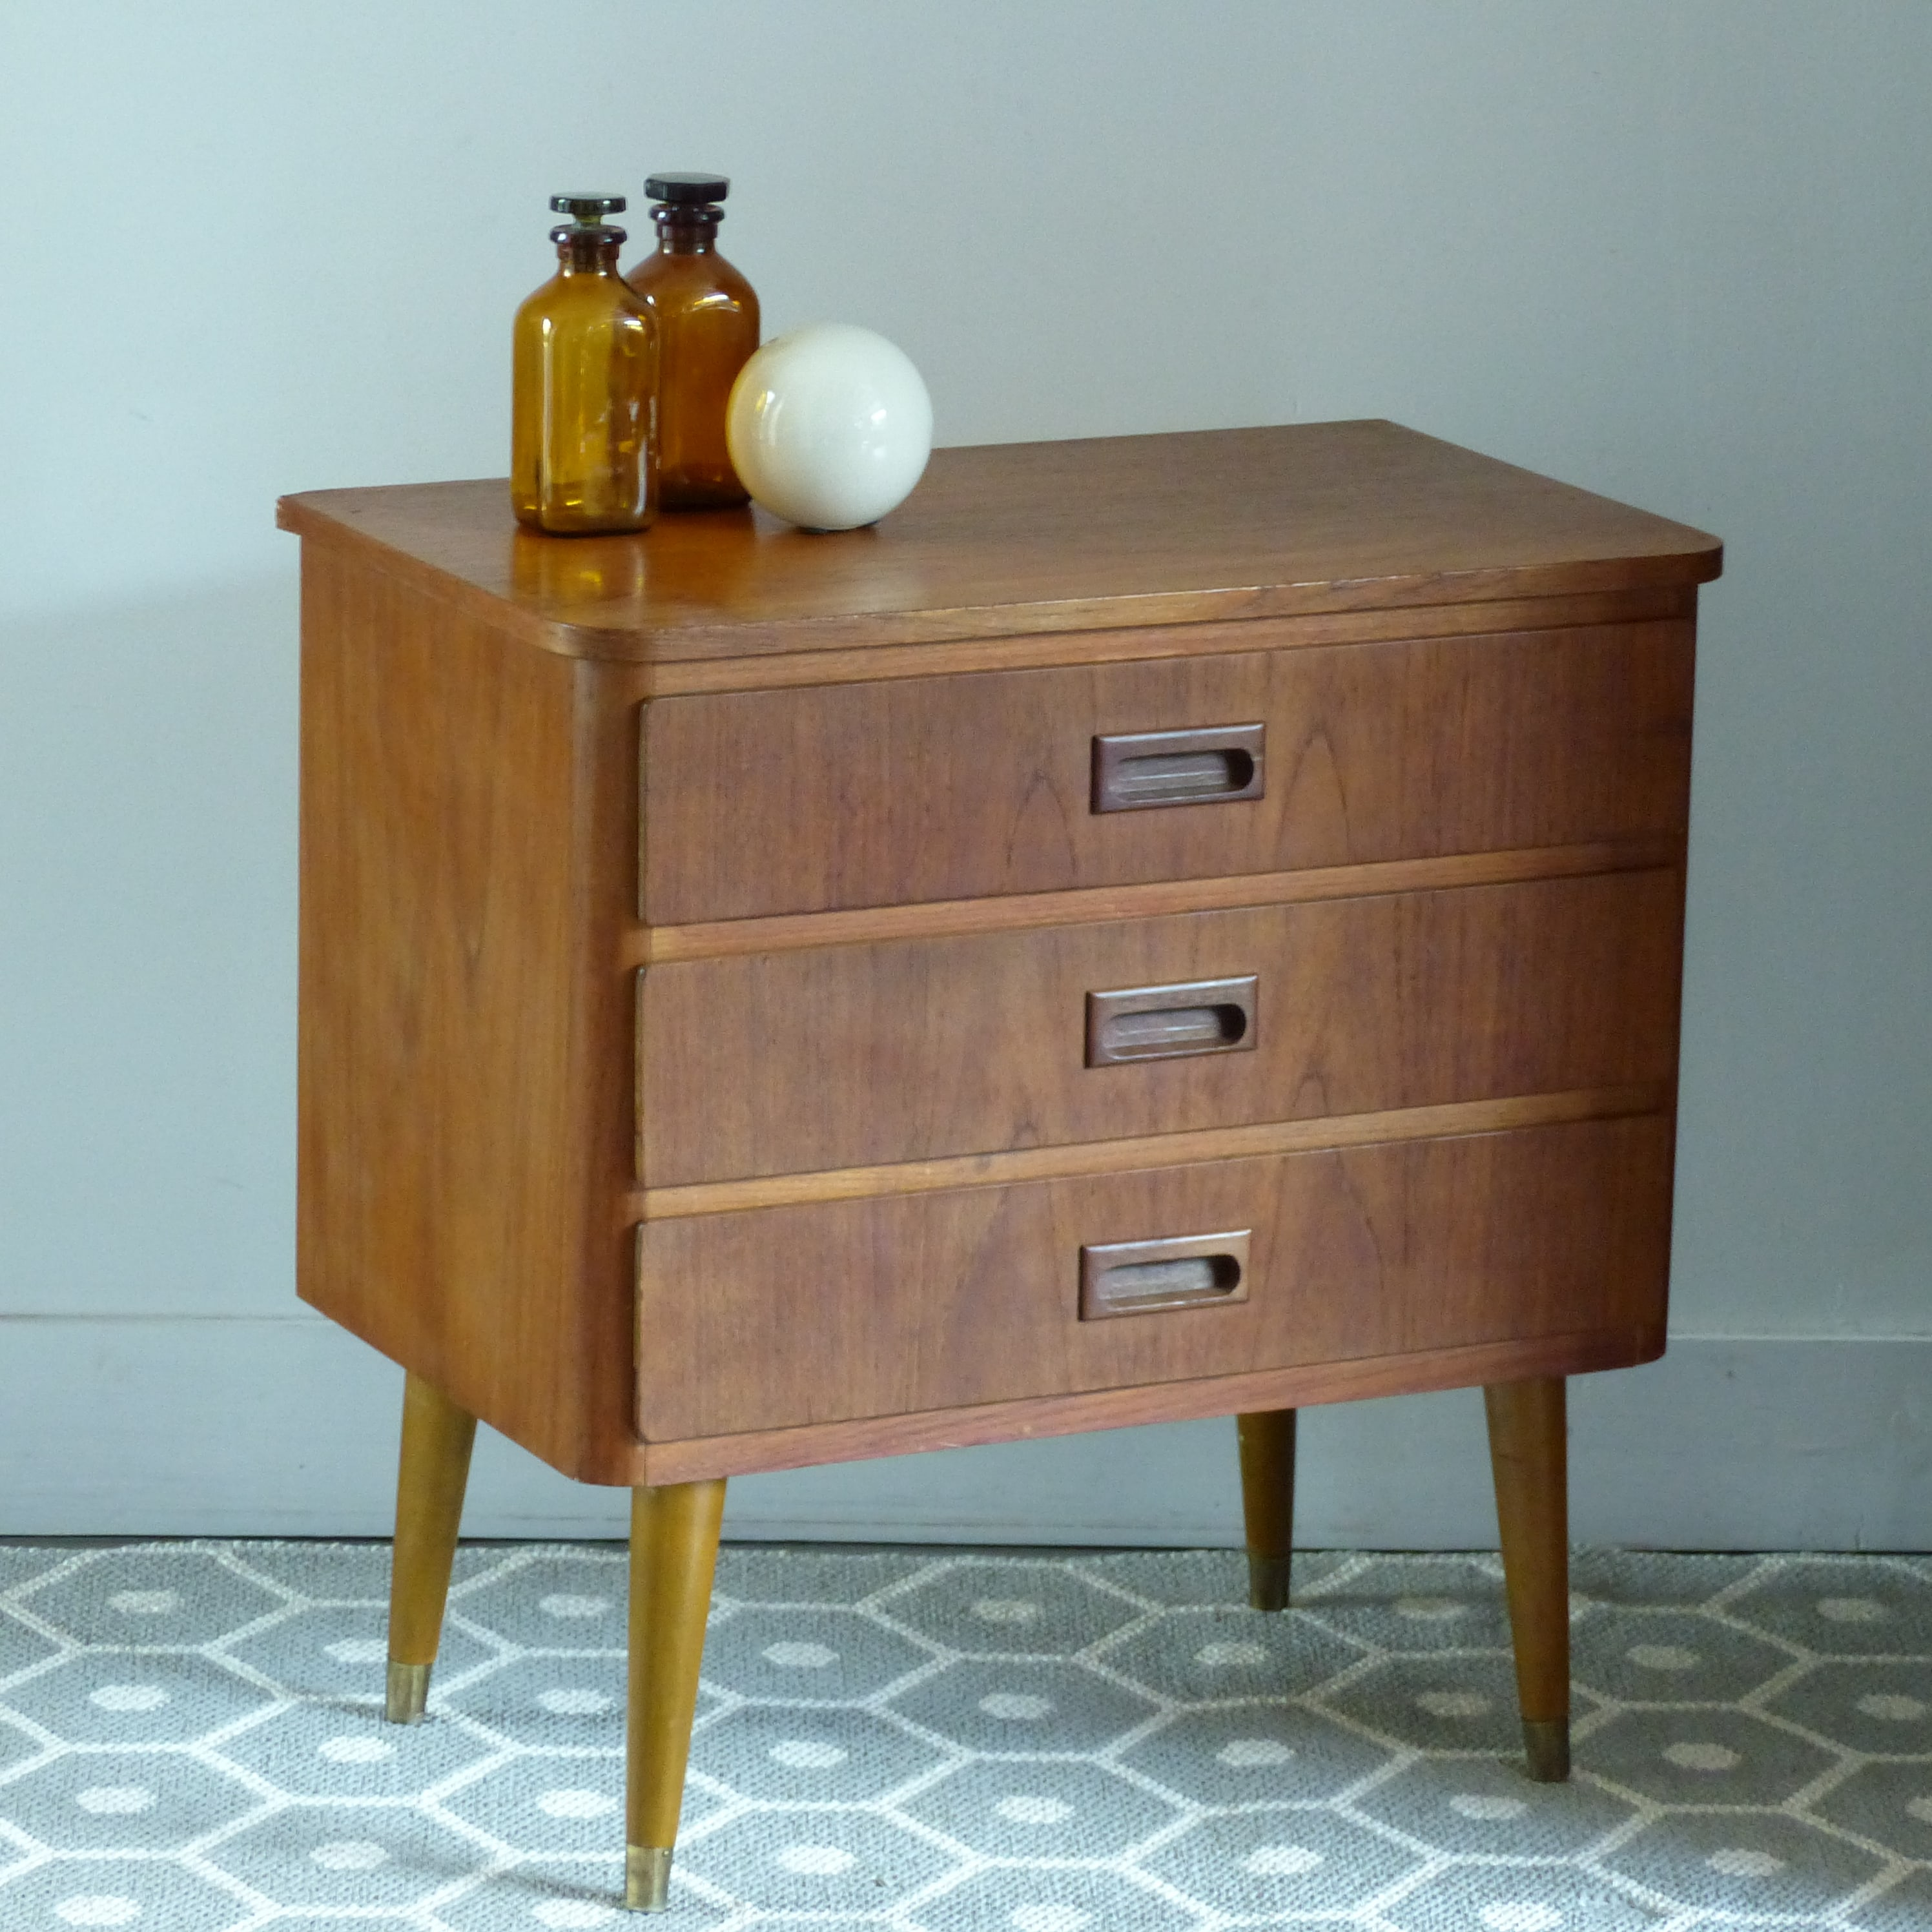 petite commode vintage lignedebrocante brocante en ligne. Black Bedroom Furniture Sets. Home Design Ideas